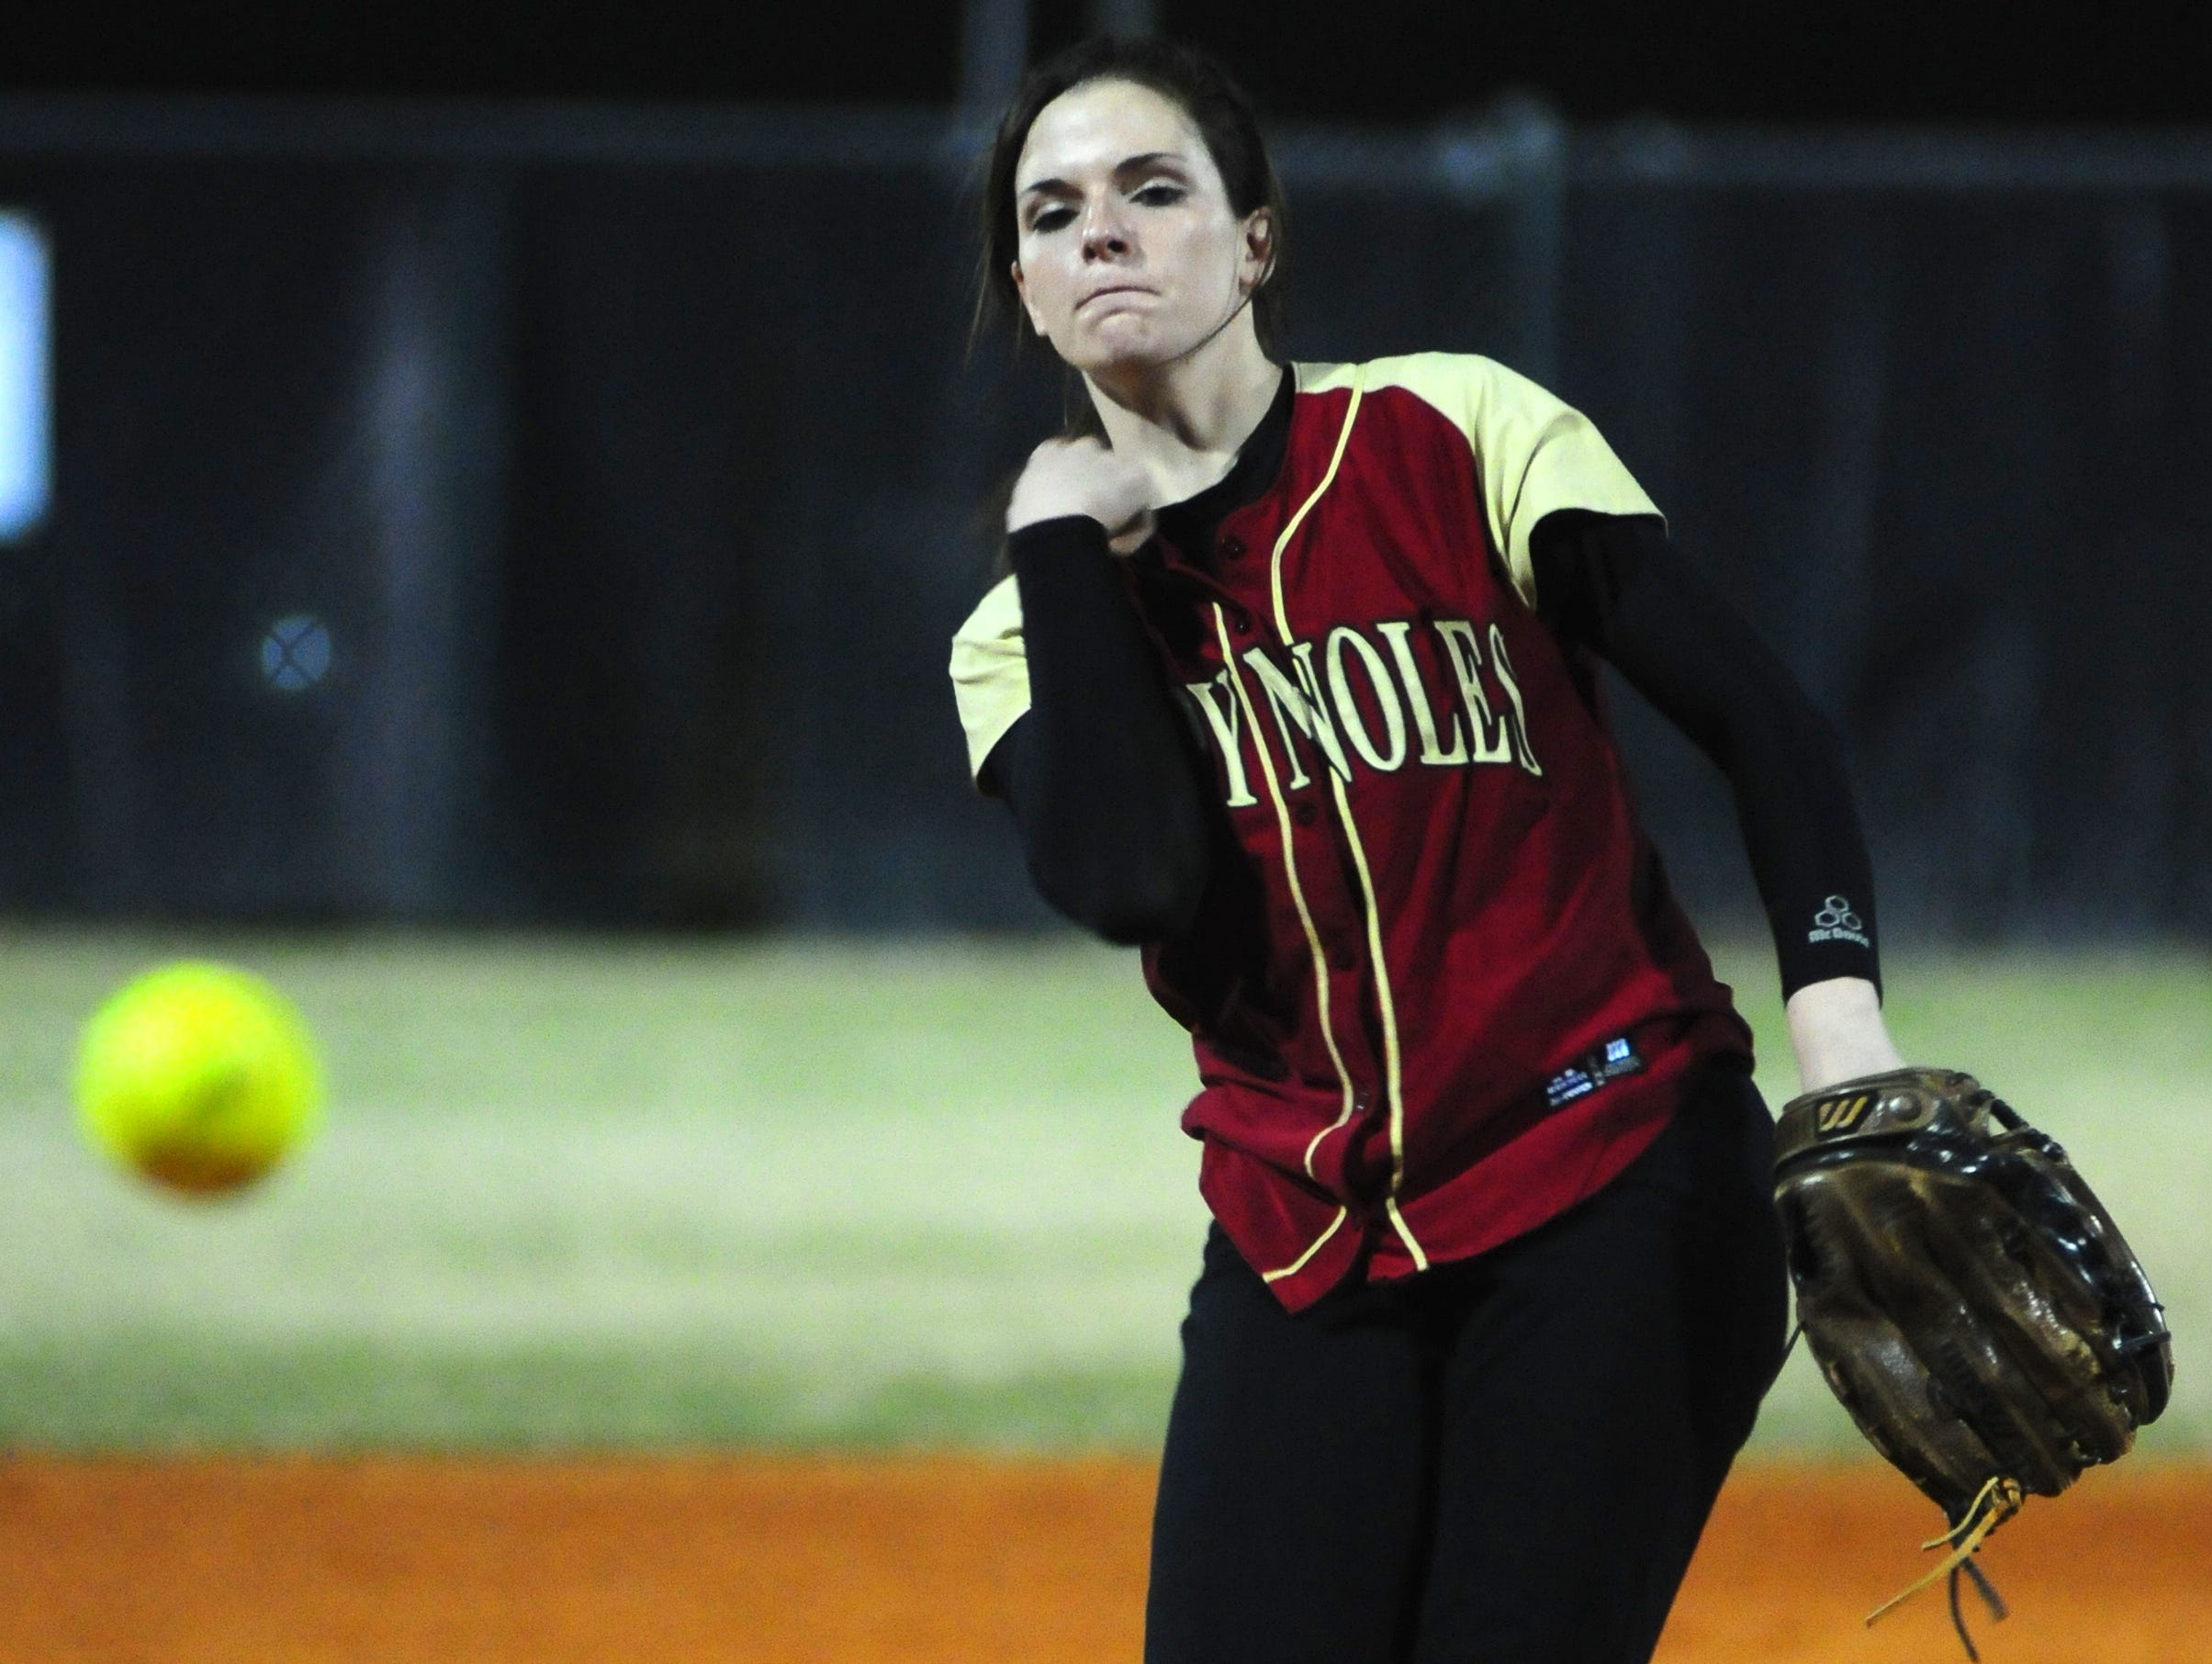 Taylor Rossman pitches in a game at Godby during a dominating high school career.